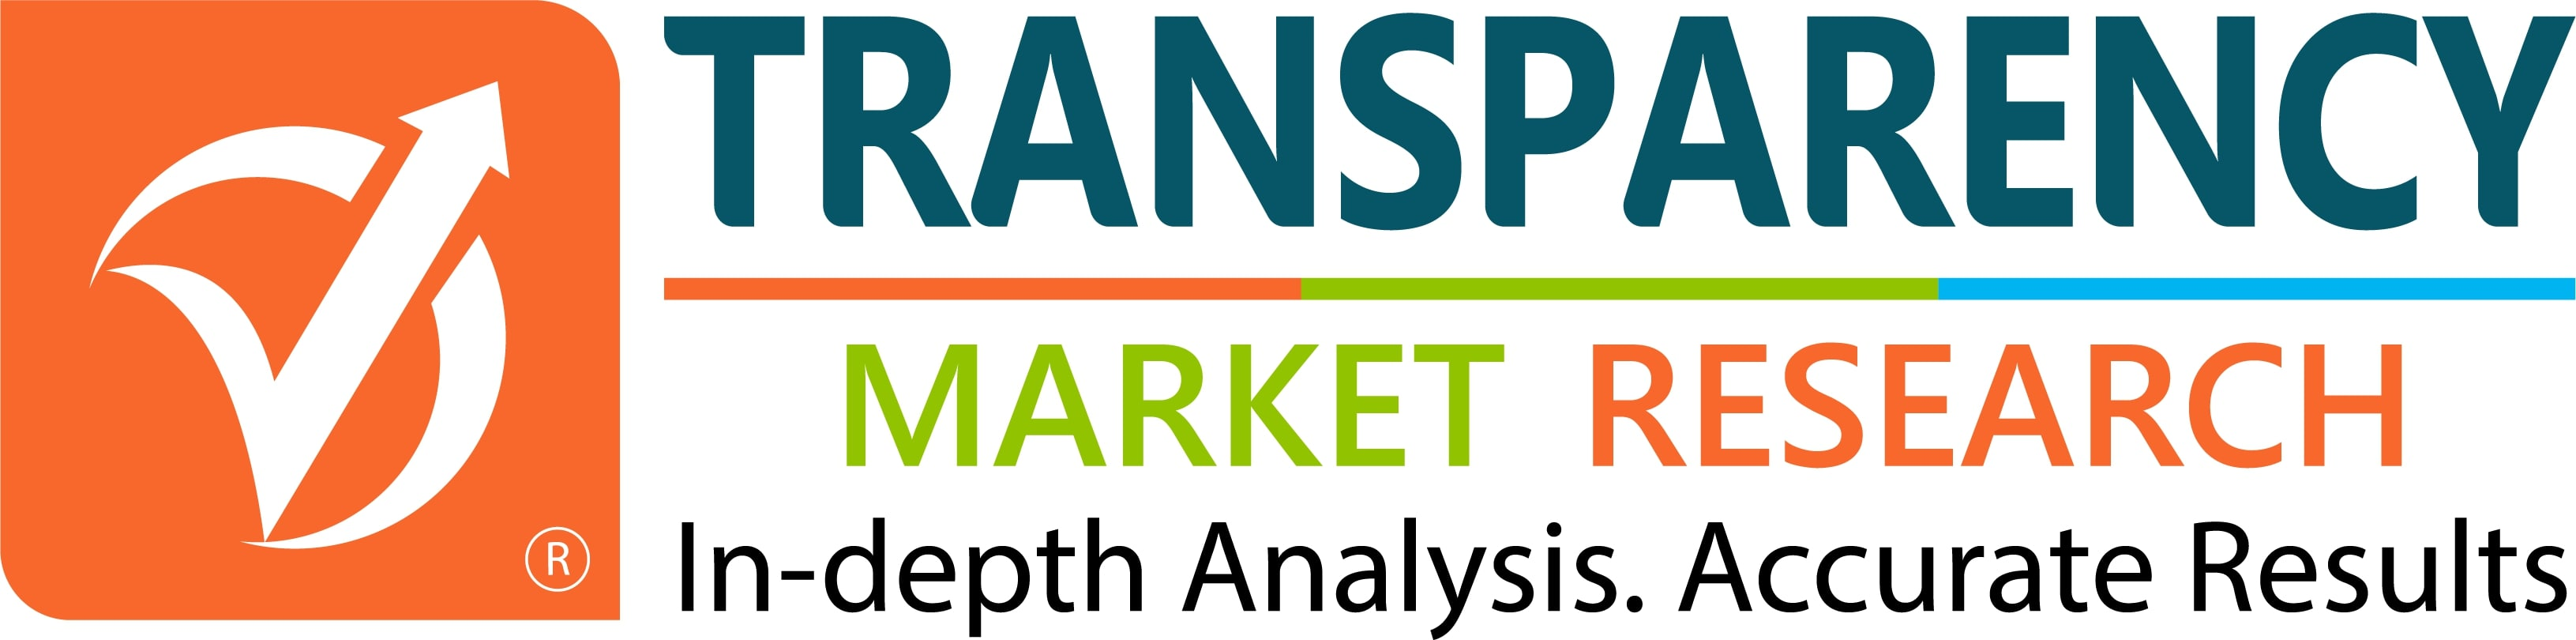 Cancer Tissue Diagnostics Market to Witness Excellent Revenue Growth, Emerging Trends and Forecast by 2031